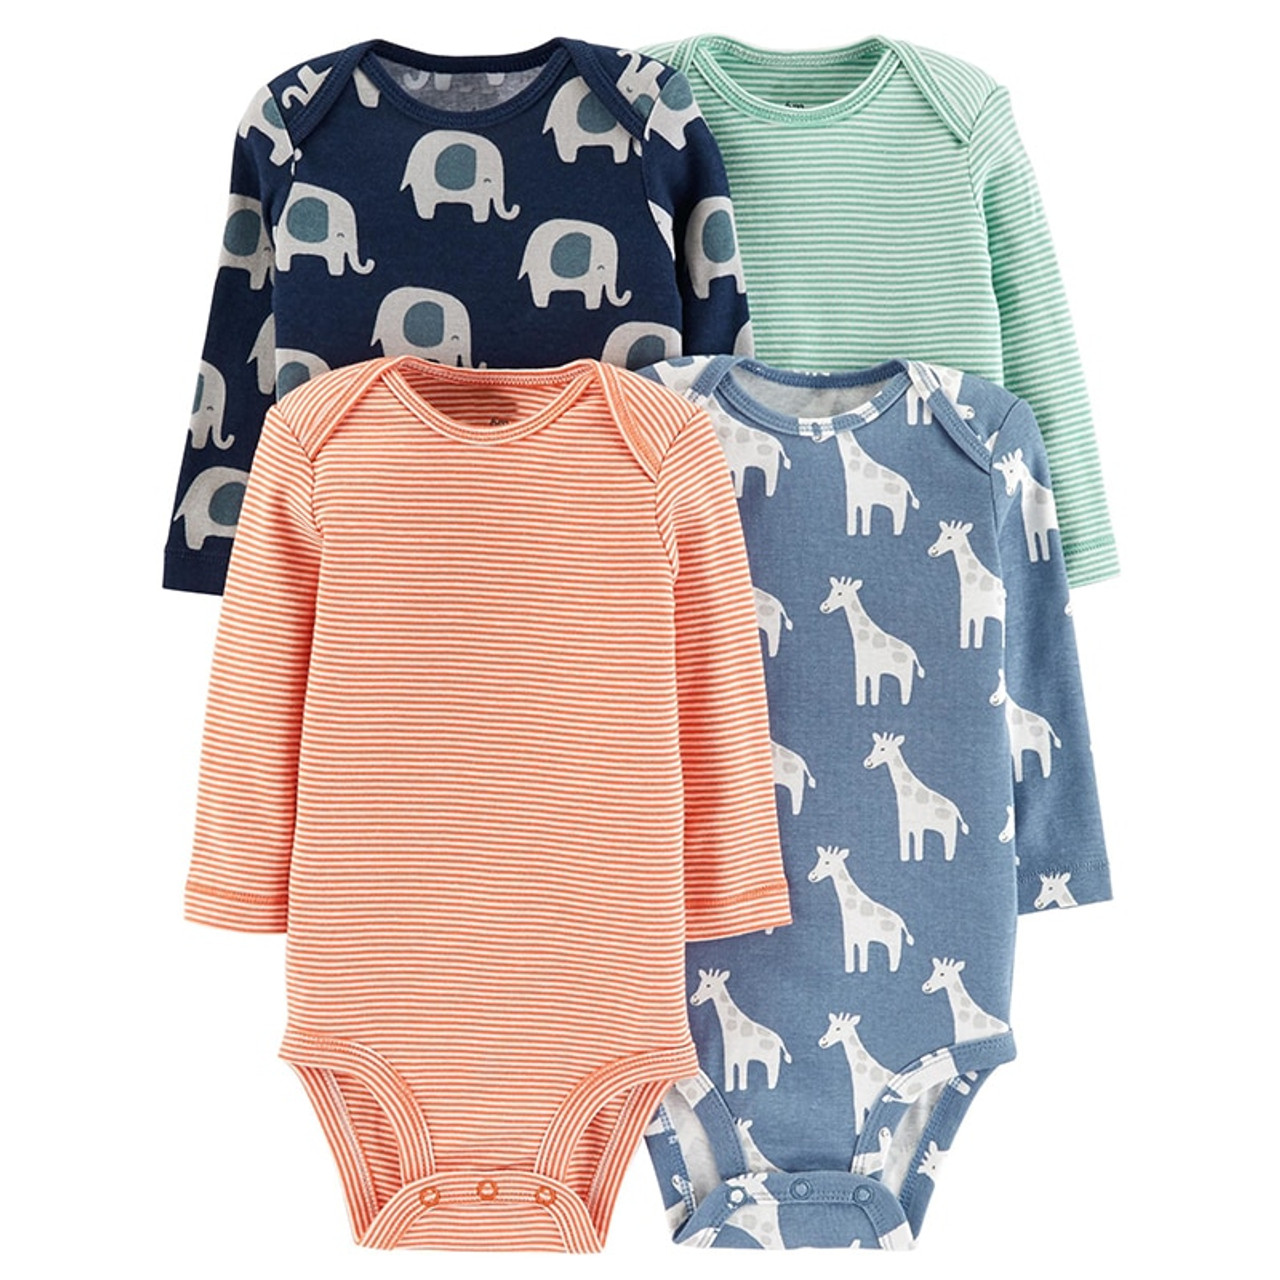 2a54526b083b ... 6pcs baby girl rompers 2018 newborn baby clothes long sleeve clothing  romper baby jumpsuit cute rabbit ...